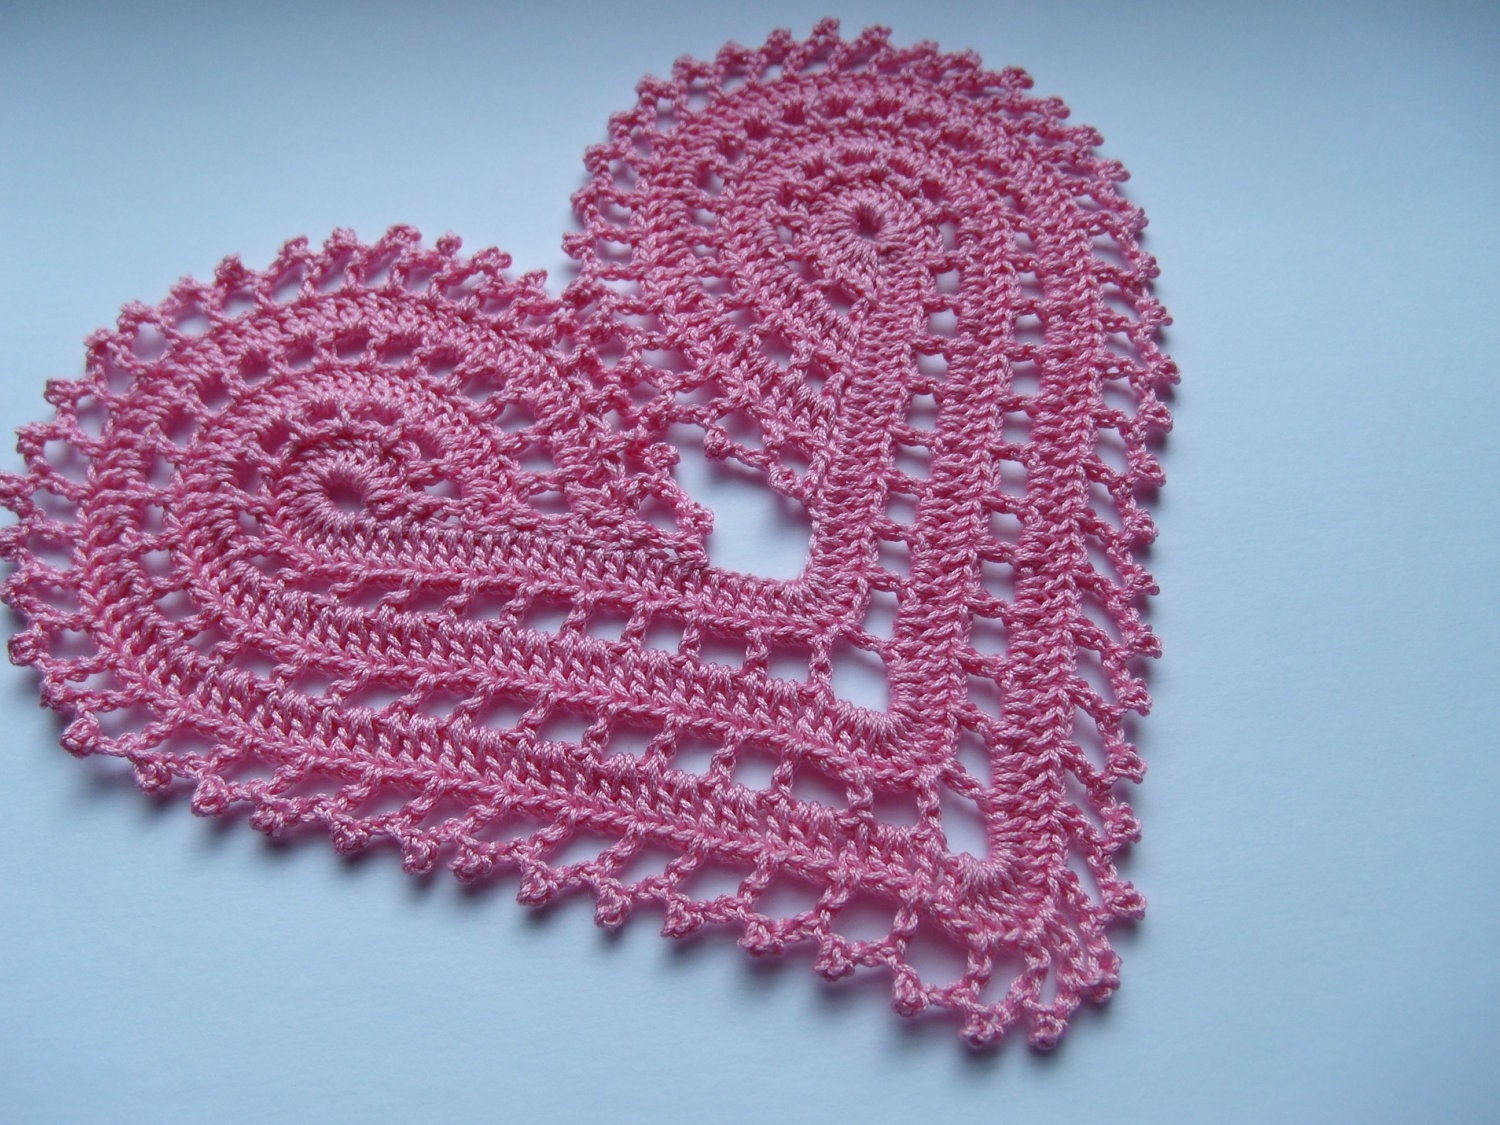 Free Crochet Pattern For Heart Doily : Crochet Heart Doily Pattern Search Results Calendar 2015